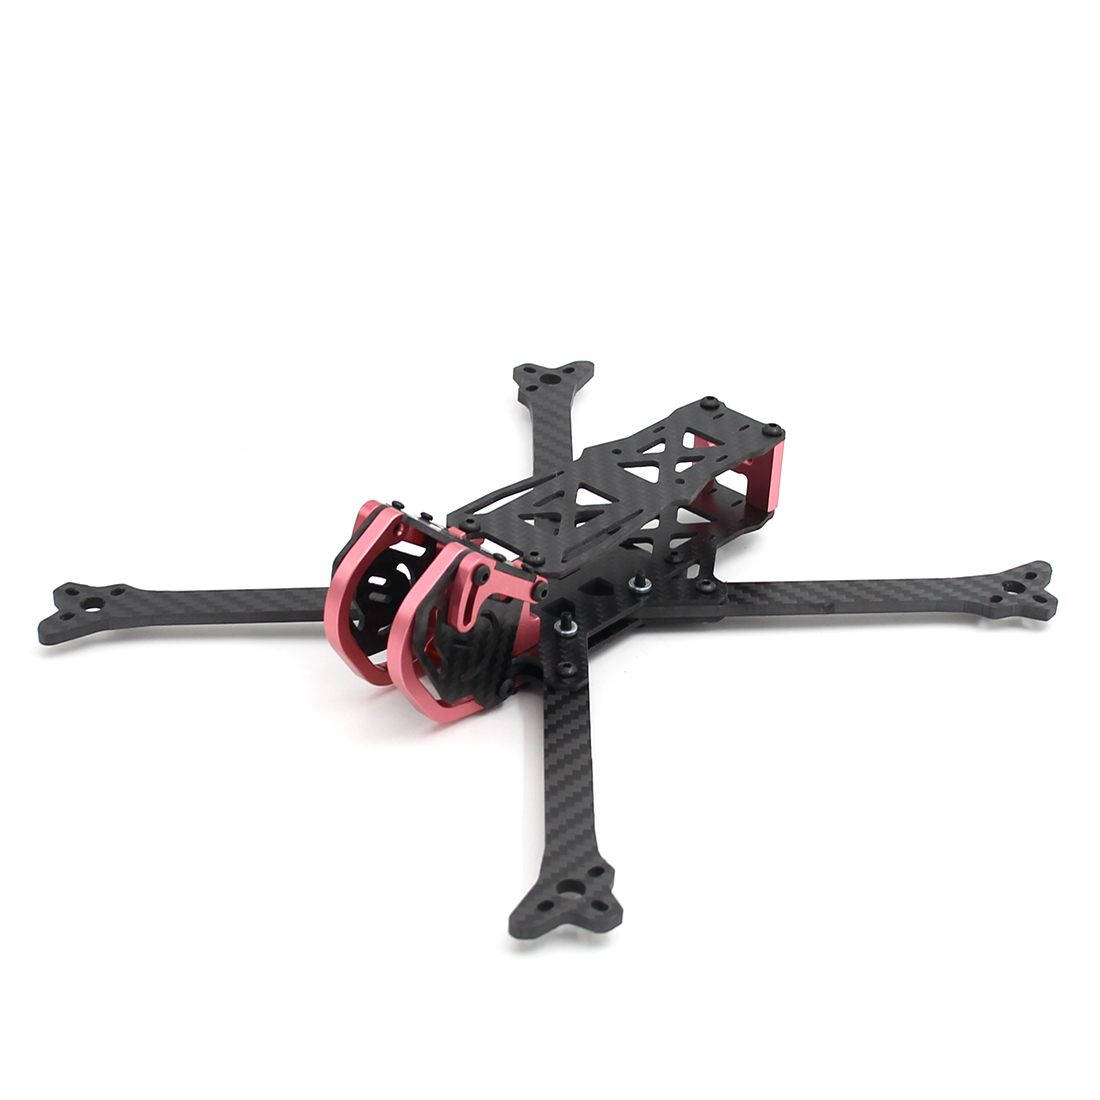 Aquaman 5inch 255mm trueX 4mm arms aluminum parts new design FPV Racing Freestyle quadcopter frame drone